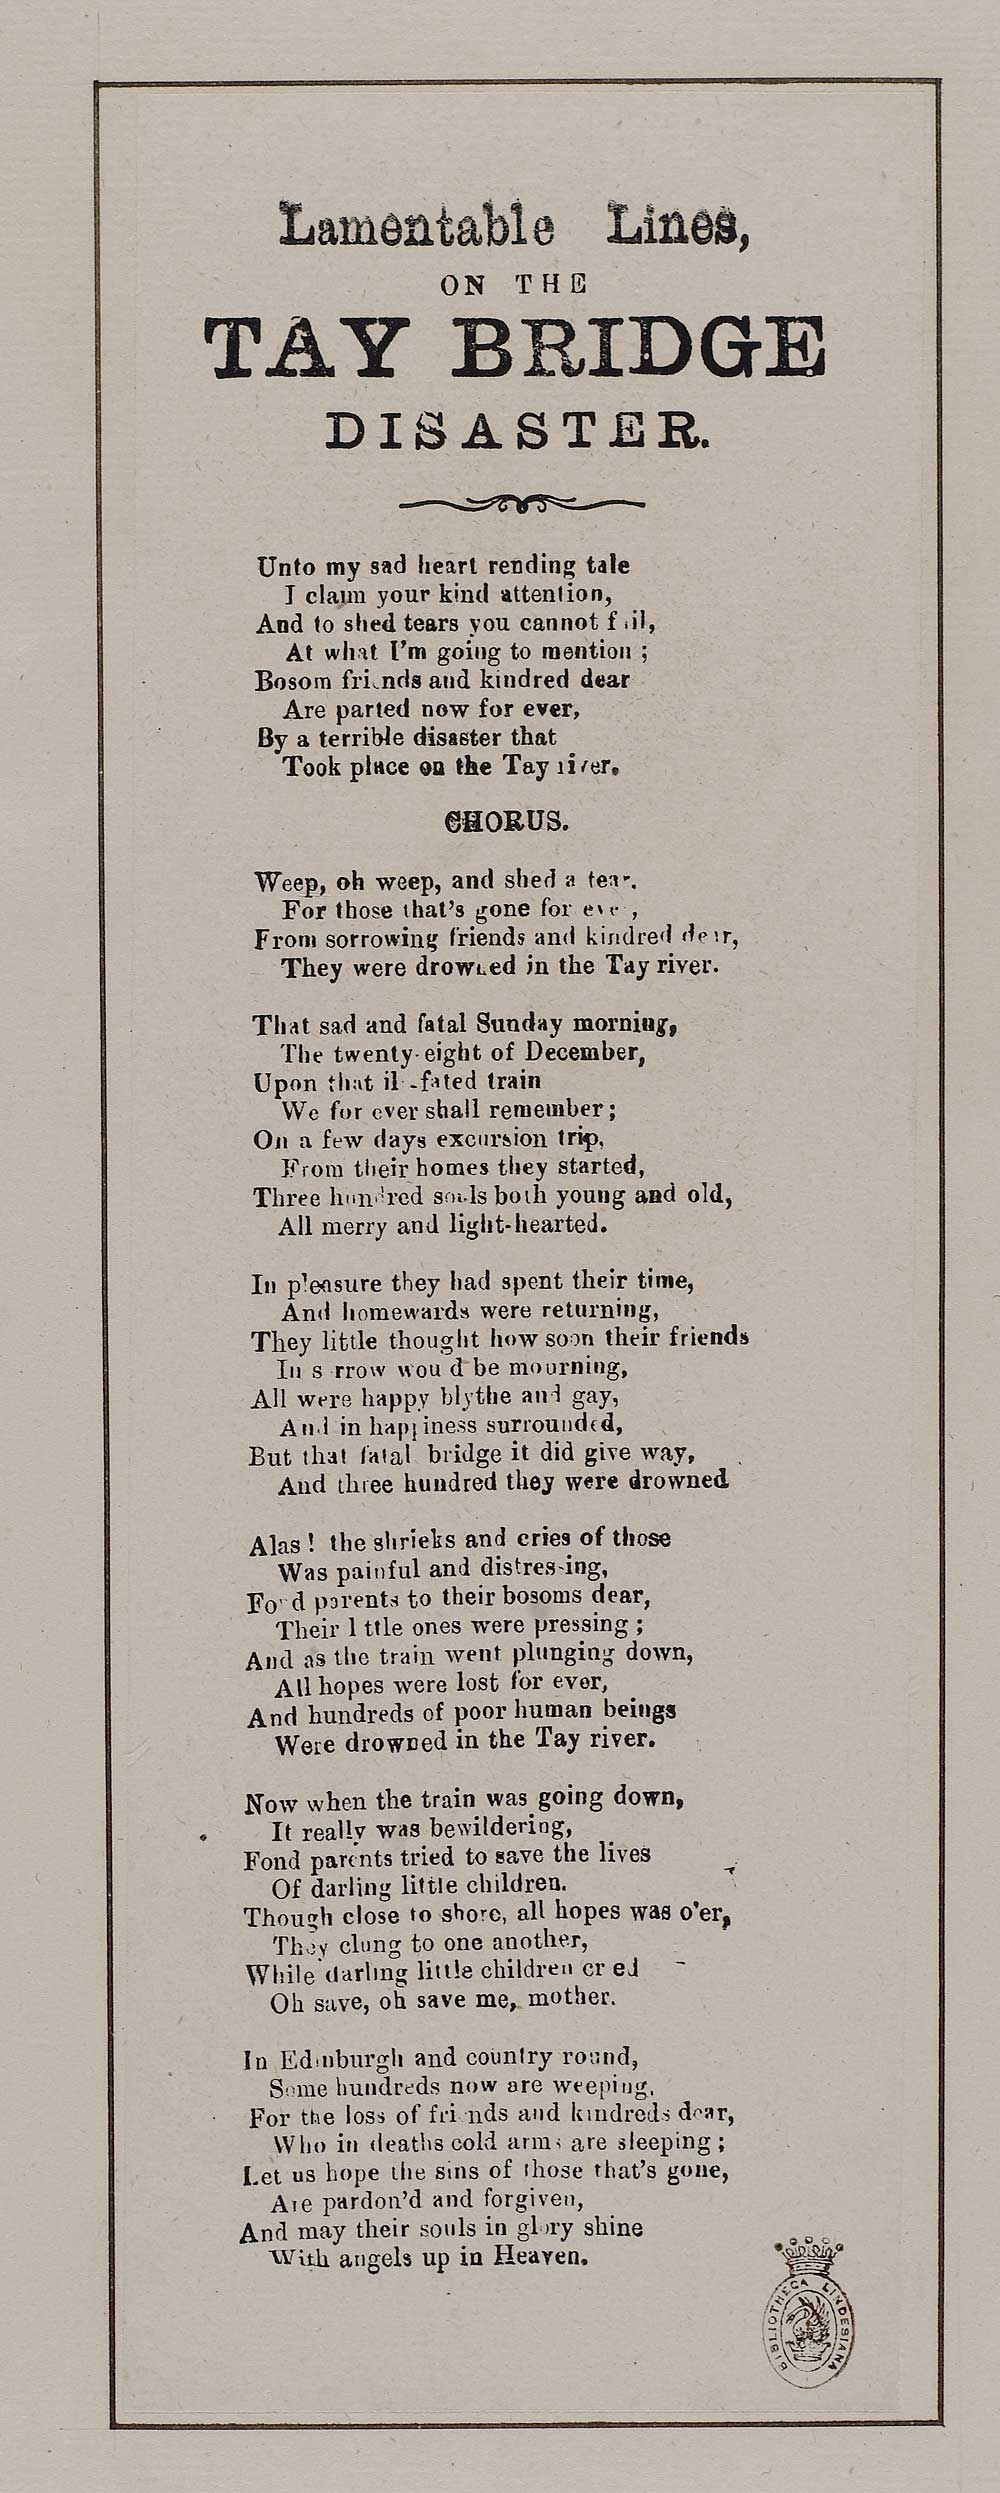 Another contemporaneous example of bad Tay Bridge poetry, from an unnamed poet. National Library of Scotland (CC BY 4.0).